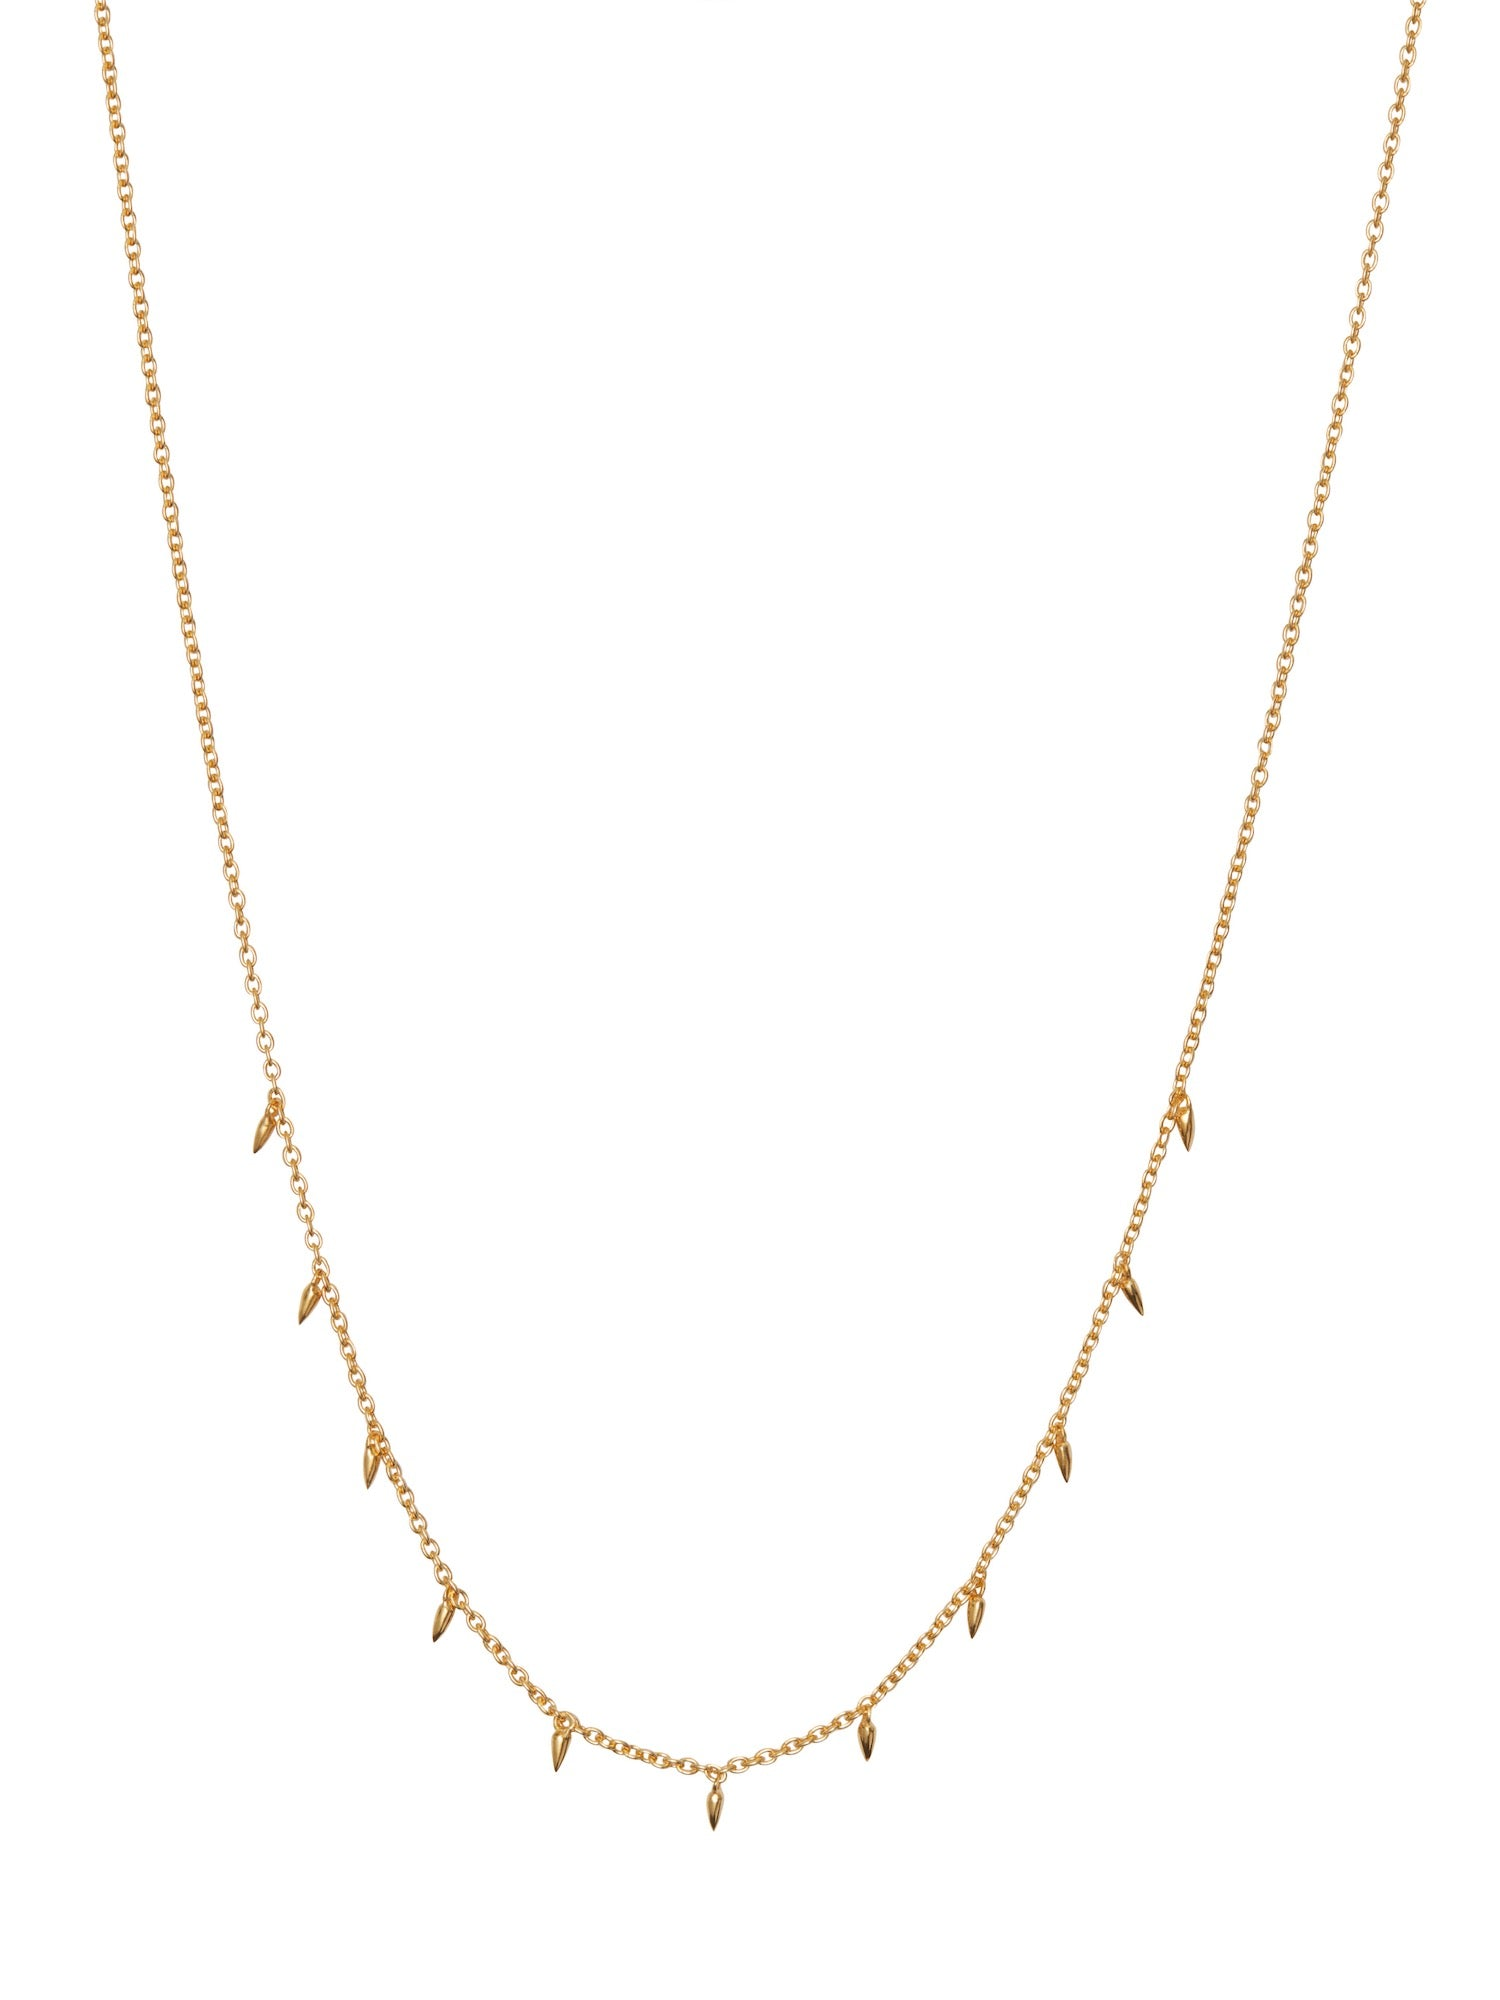 Pendul Necklace - ensemble